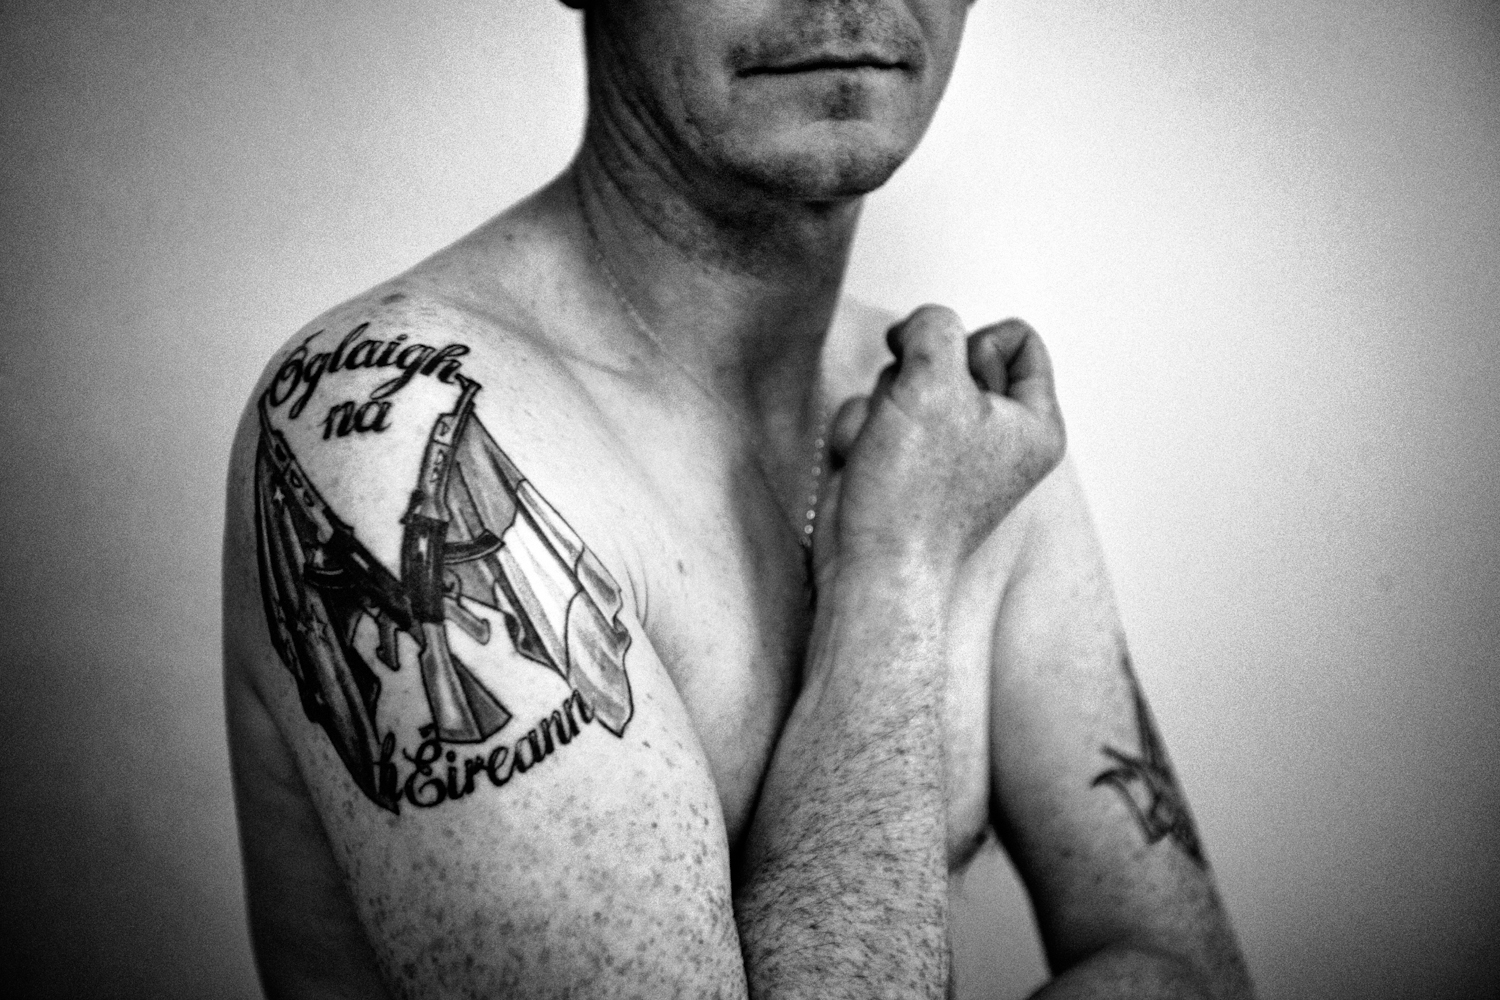 Independent on my skin 8 : Colm (38) - Dublin - Five generations of Republicans soldier of Ireland, proud to be one. The state is trying to criminalize the idea. Got into politics a few years ago because the movement was starting to lose its energy. // from seriea about IRA terrorists.